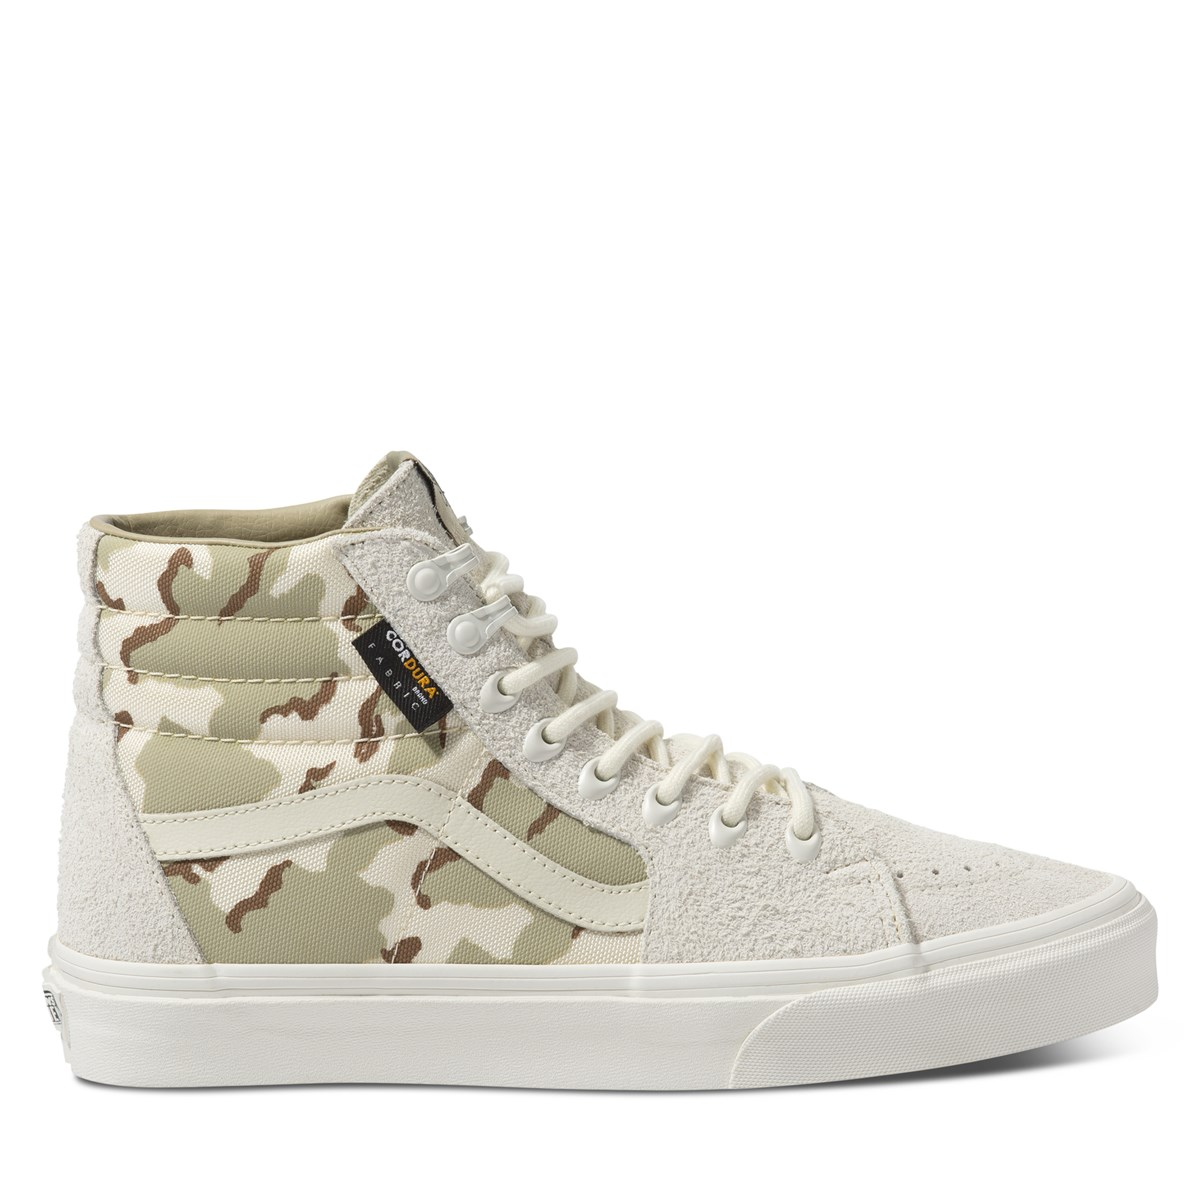 Men's Sk8-Hi Sneakers in Camo